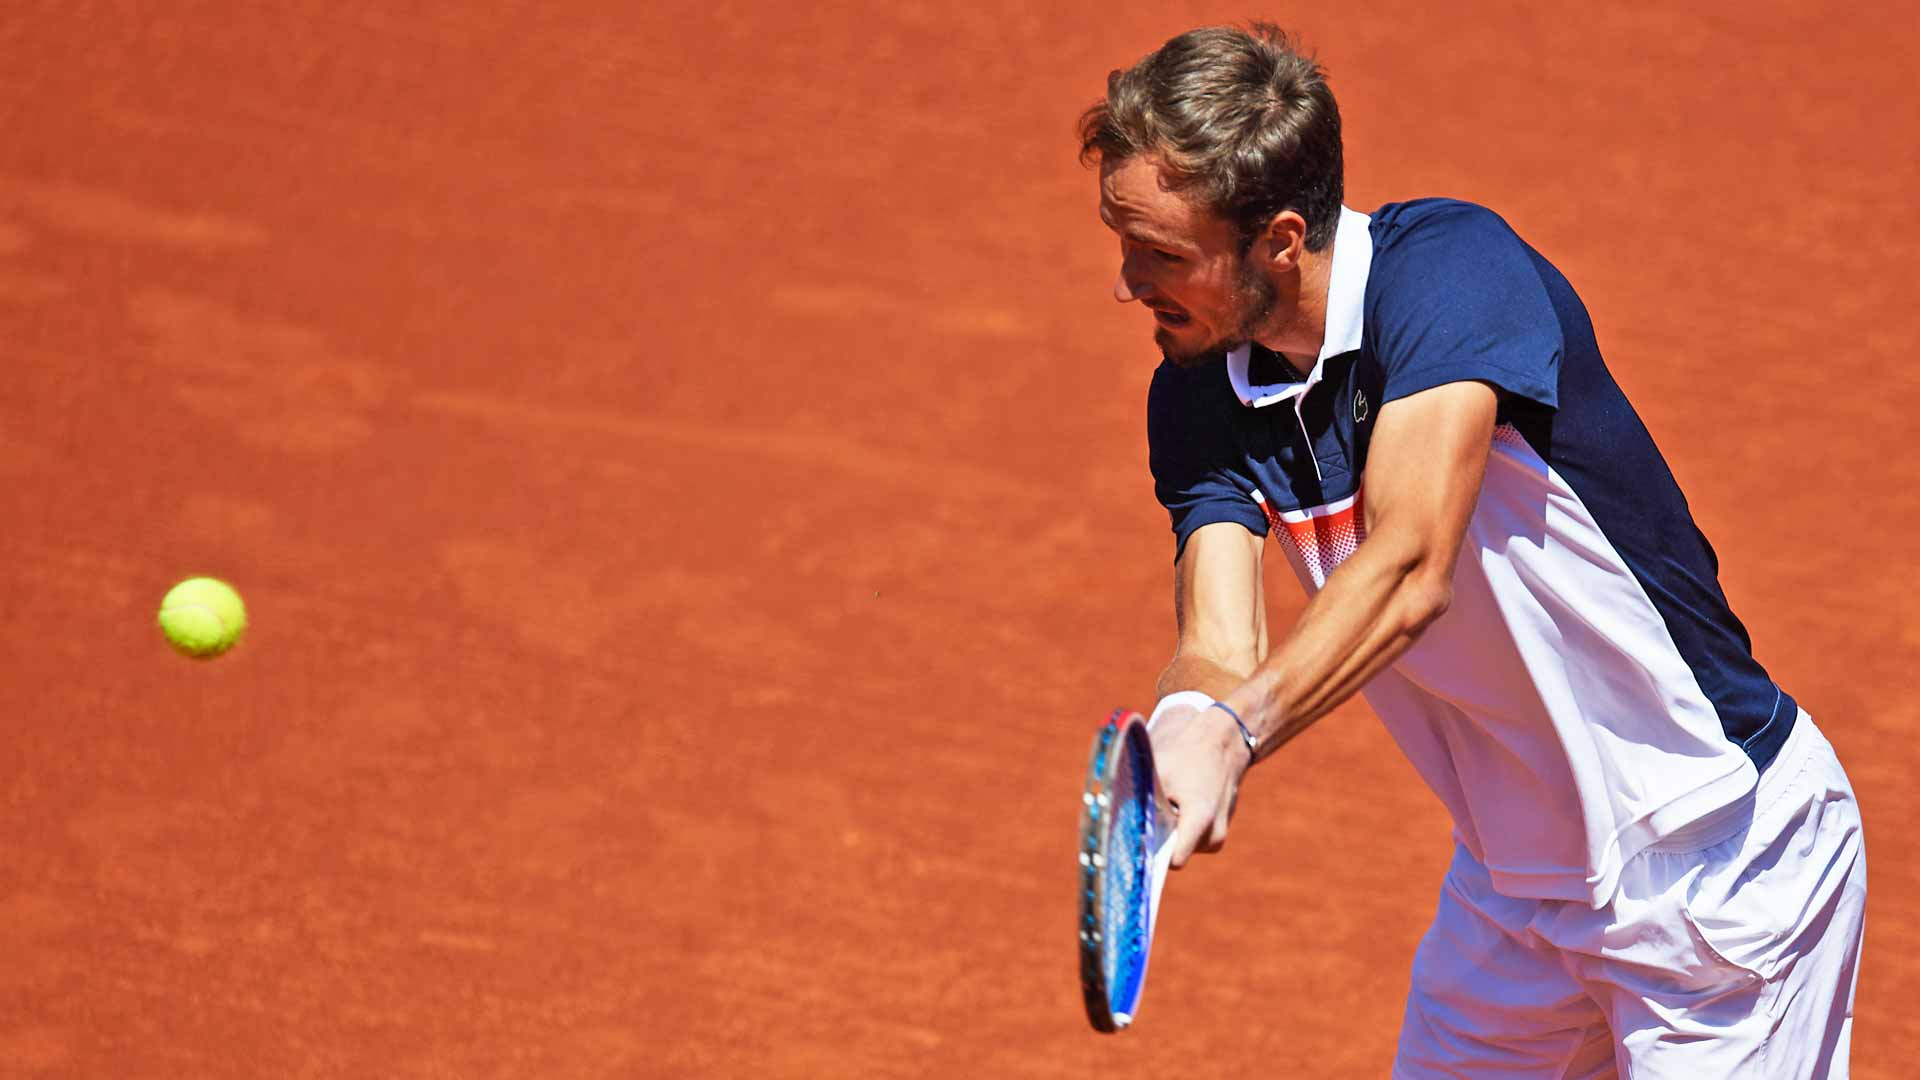 Daniil Medvedev hits a backhand in Barcelona